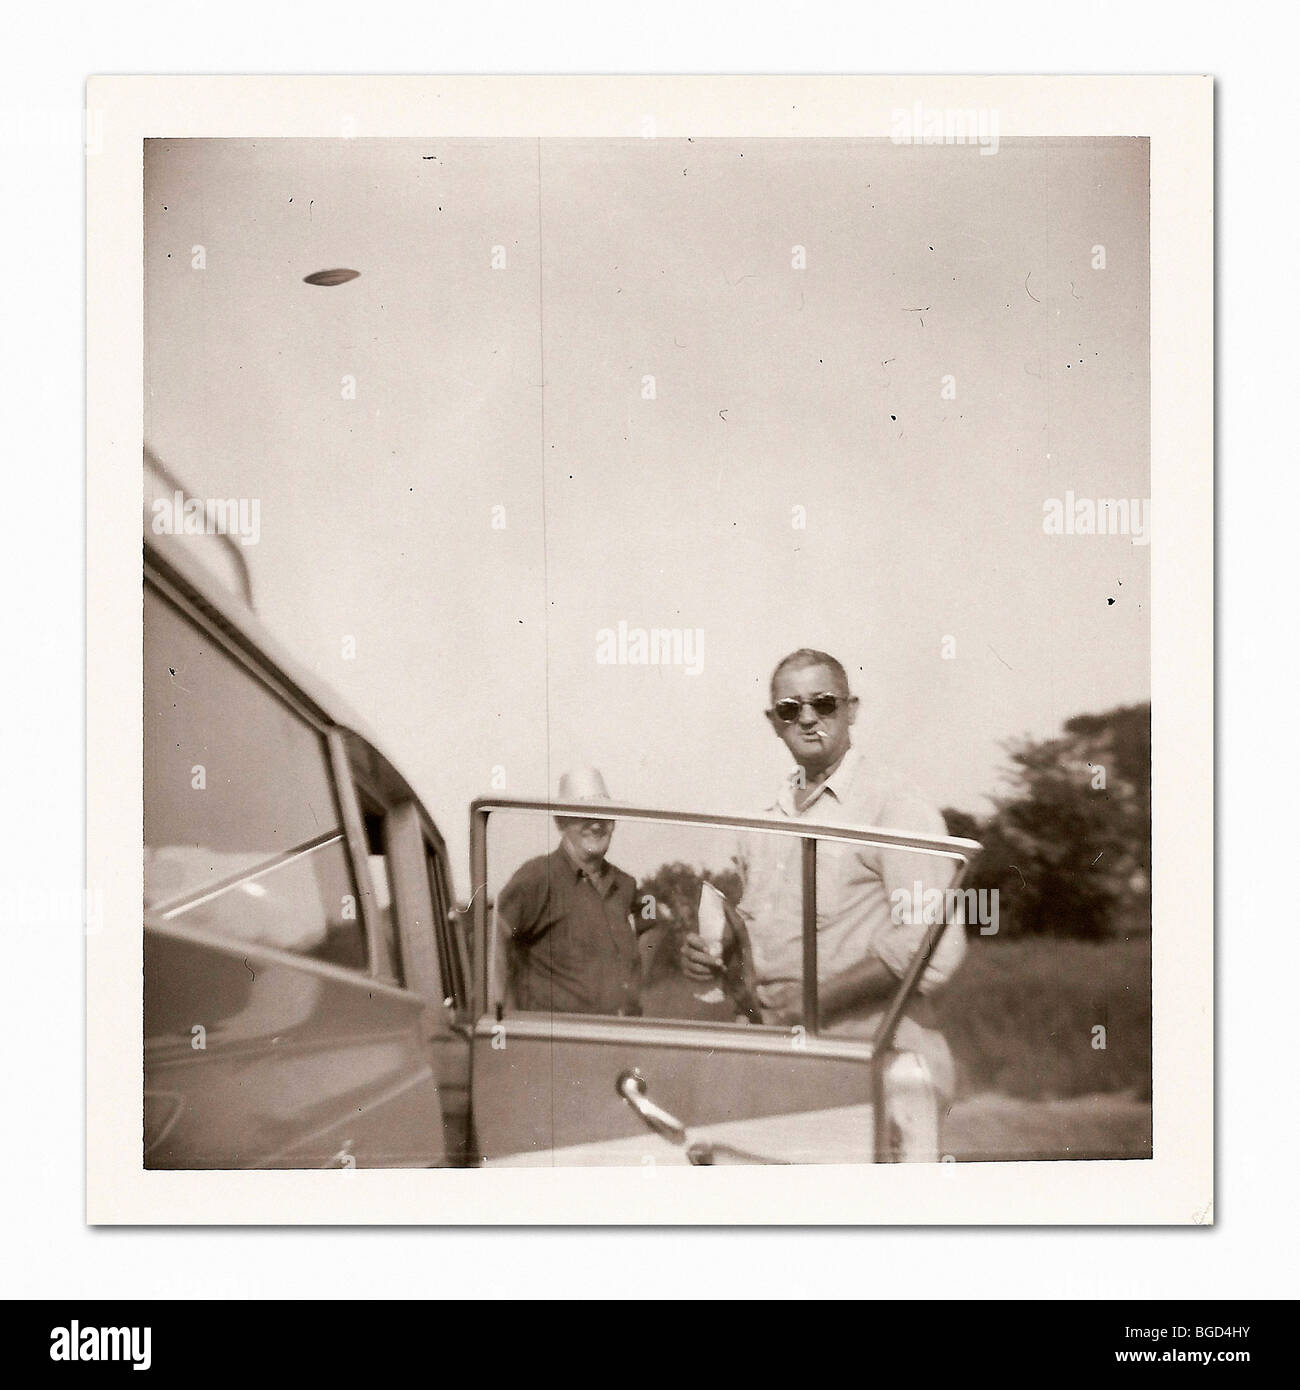 'Vintage' Polaroid photo snapshot with UFO in sky. - Stock Image